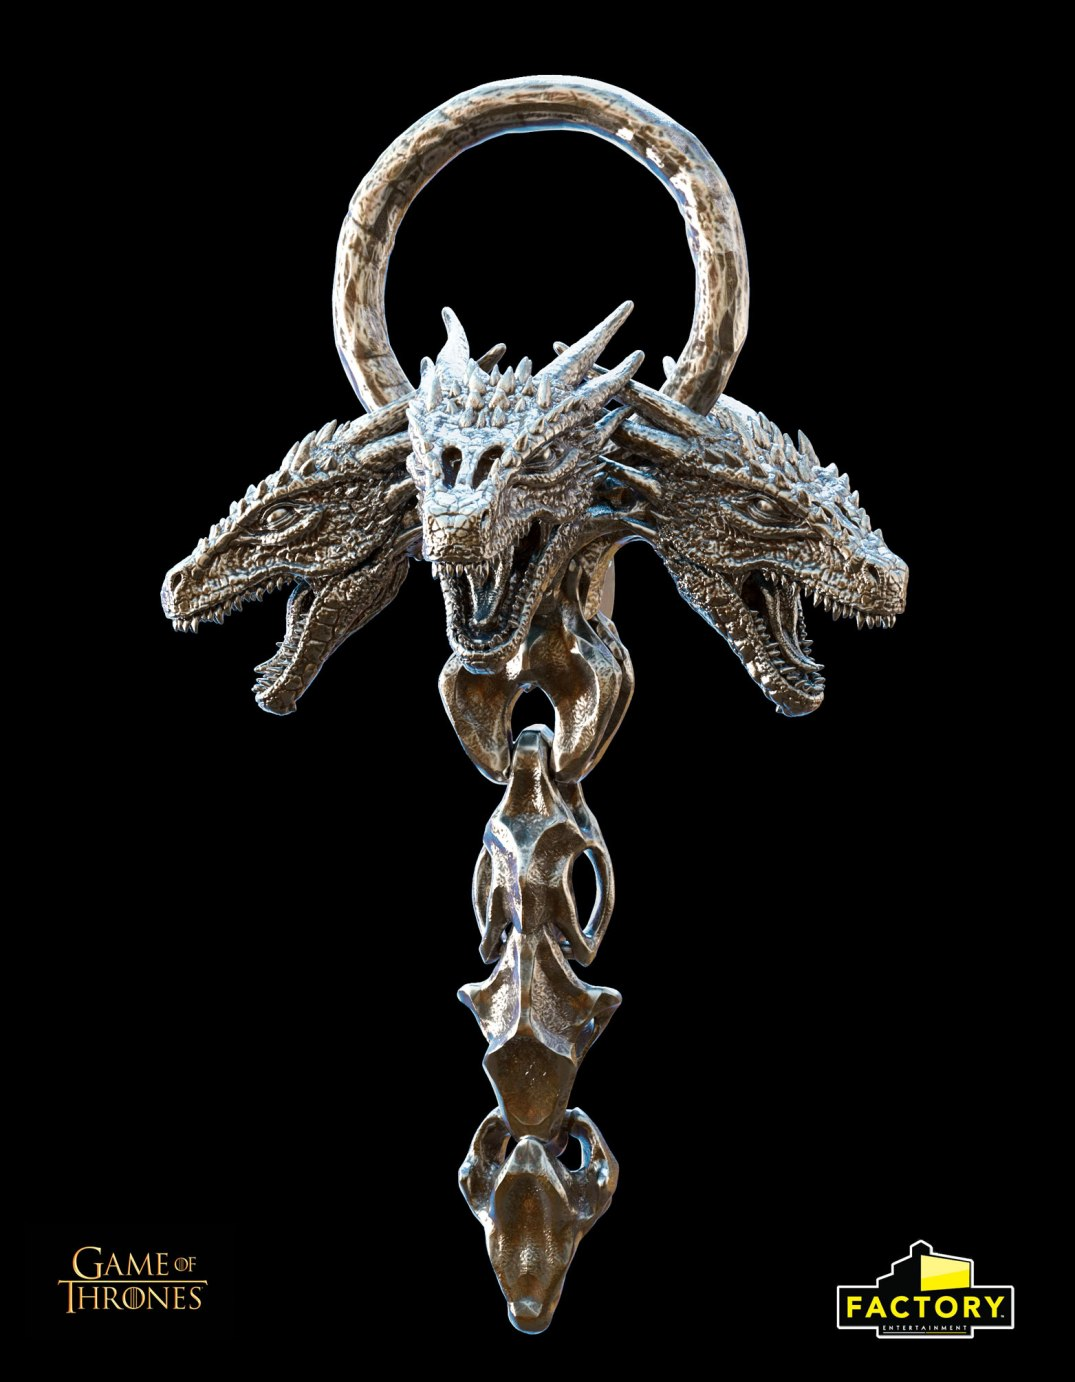 Daenerys Targaryen winter coat dragon broach replica Rey Hernandez